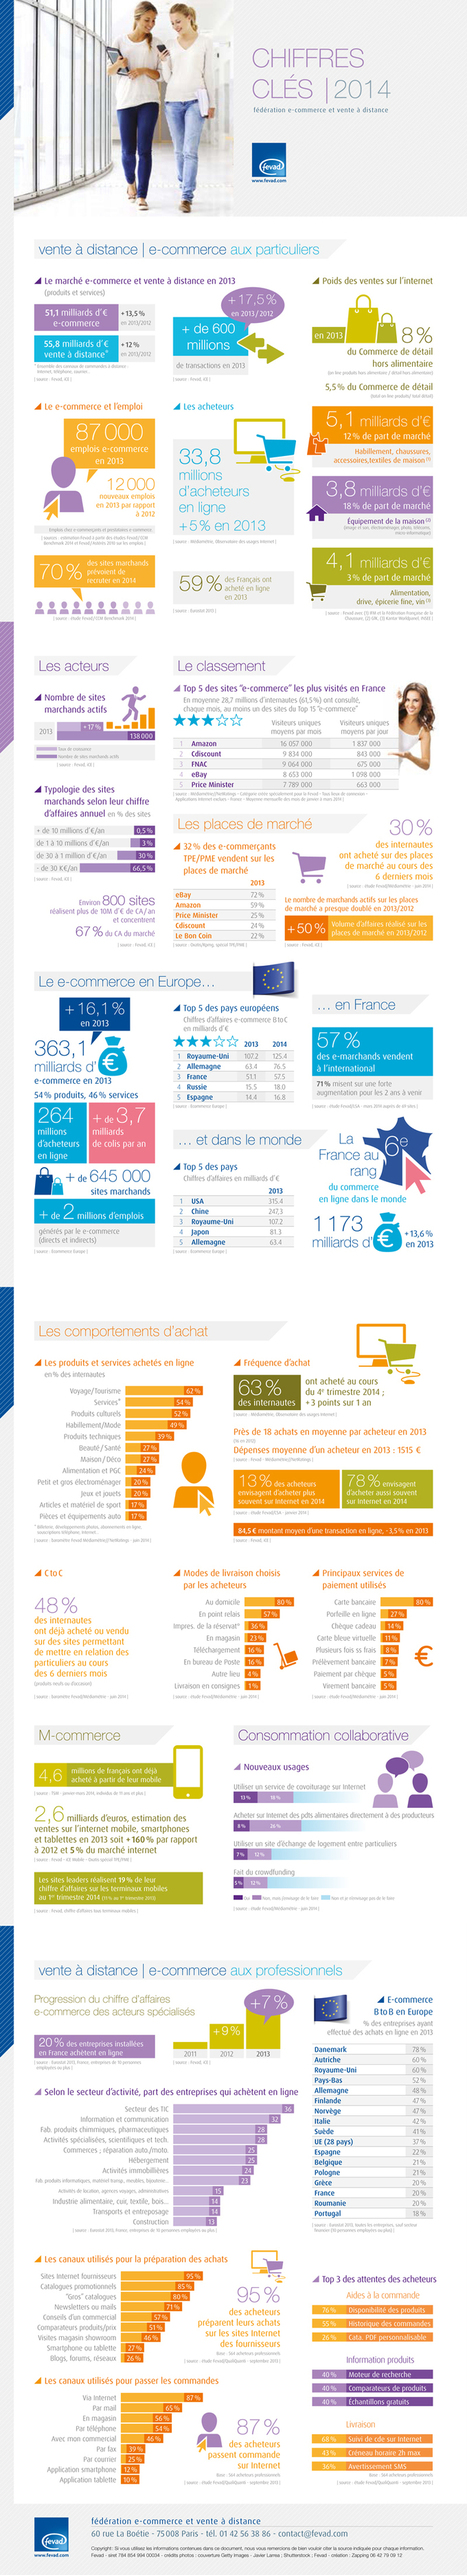 Infographie: Enjeux du Ecommerce 2014 | Scoop4learning | Scoop.it